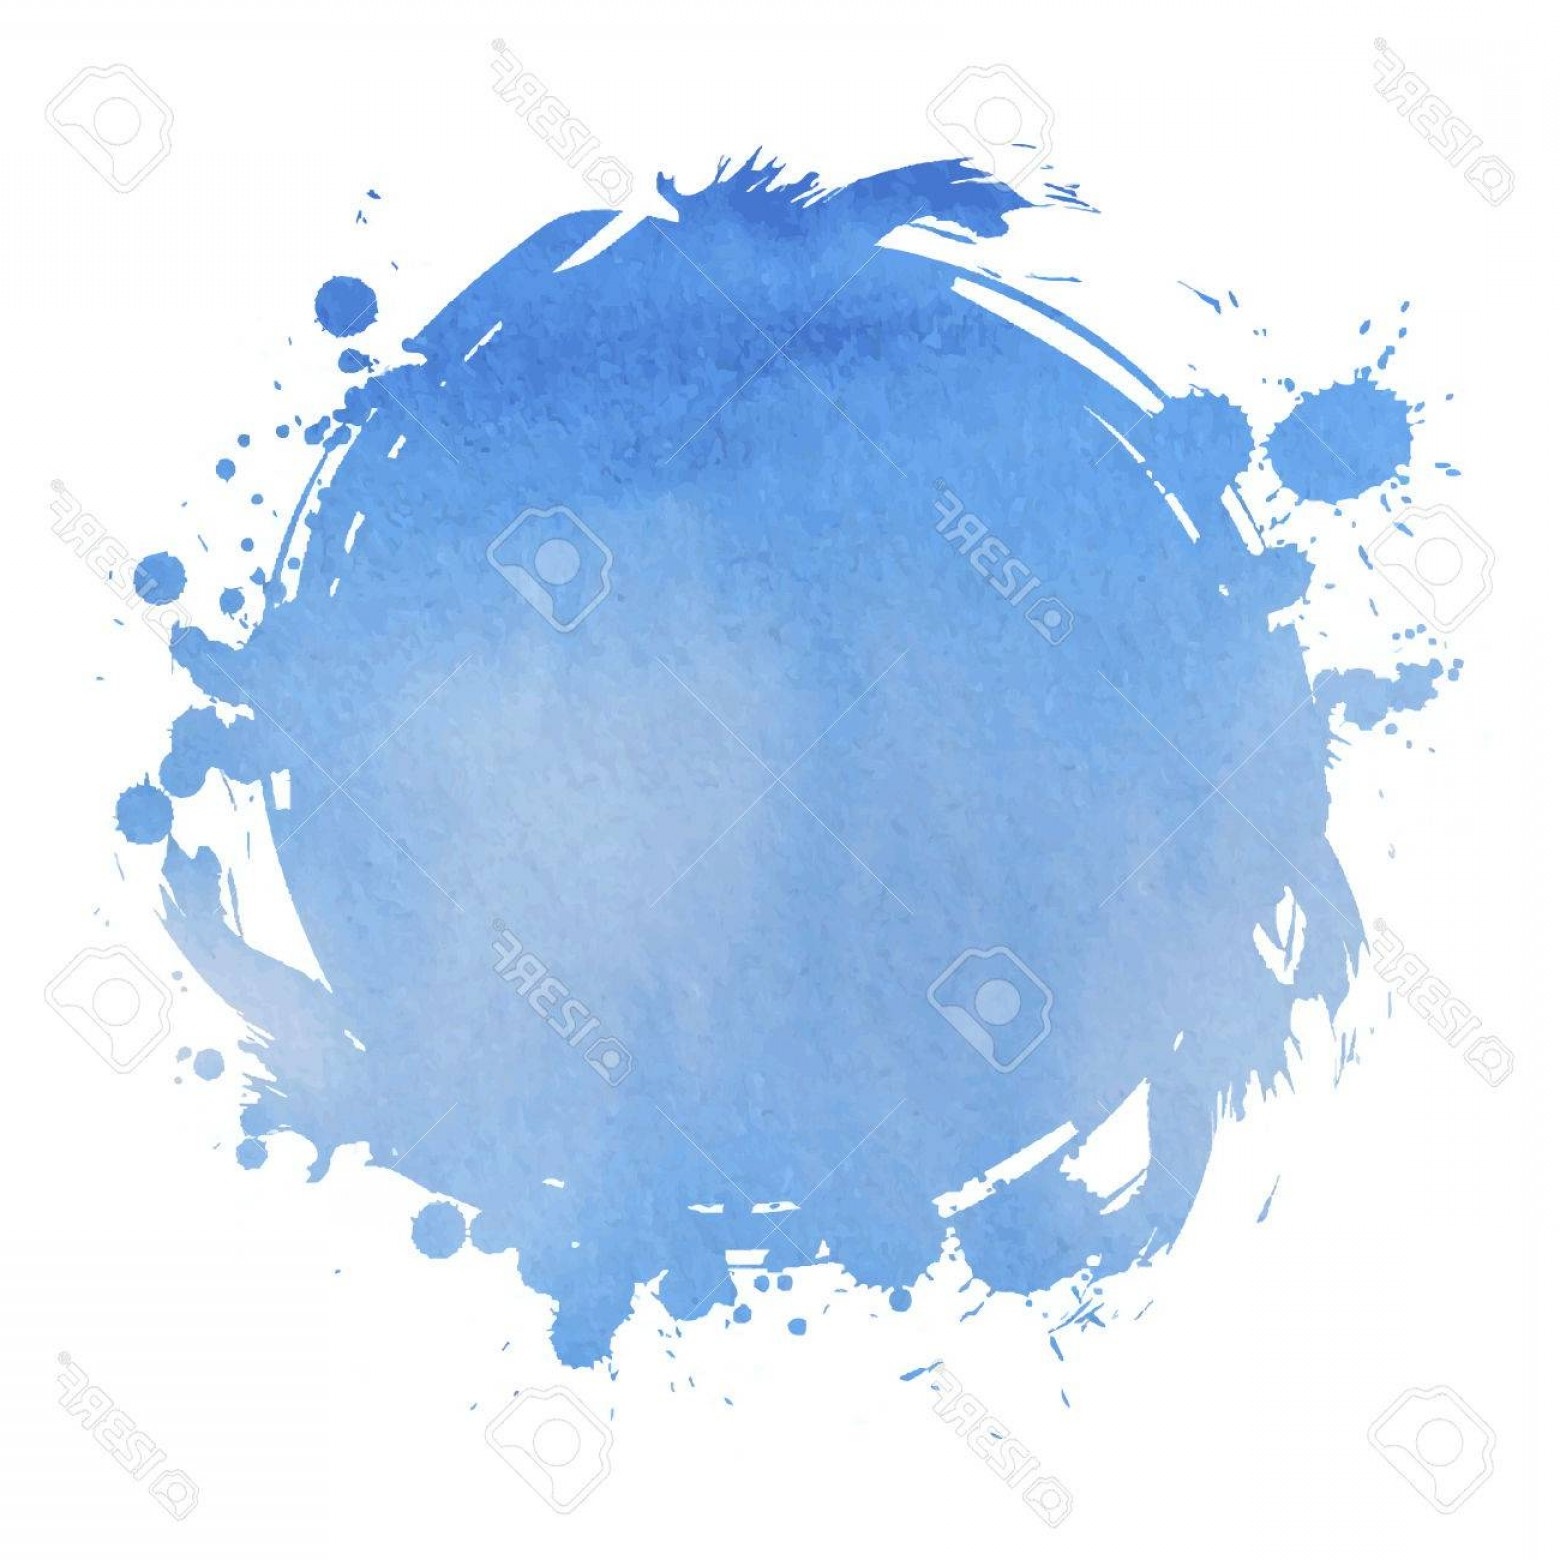 Watercolor Vector Background Free: Photostock Vector Blue Square Abstract Stylish Watercolor Background Vector Illustration